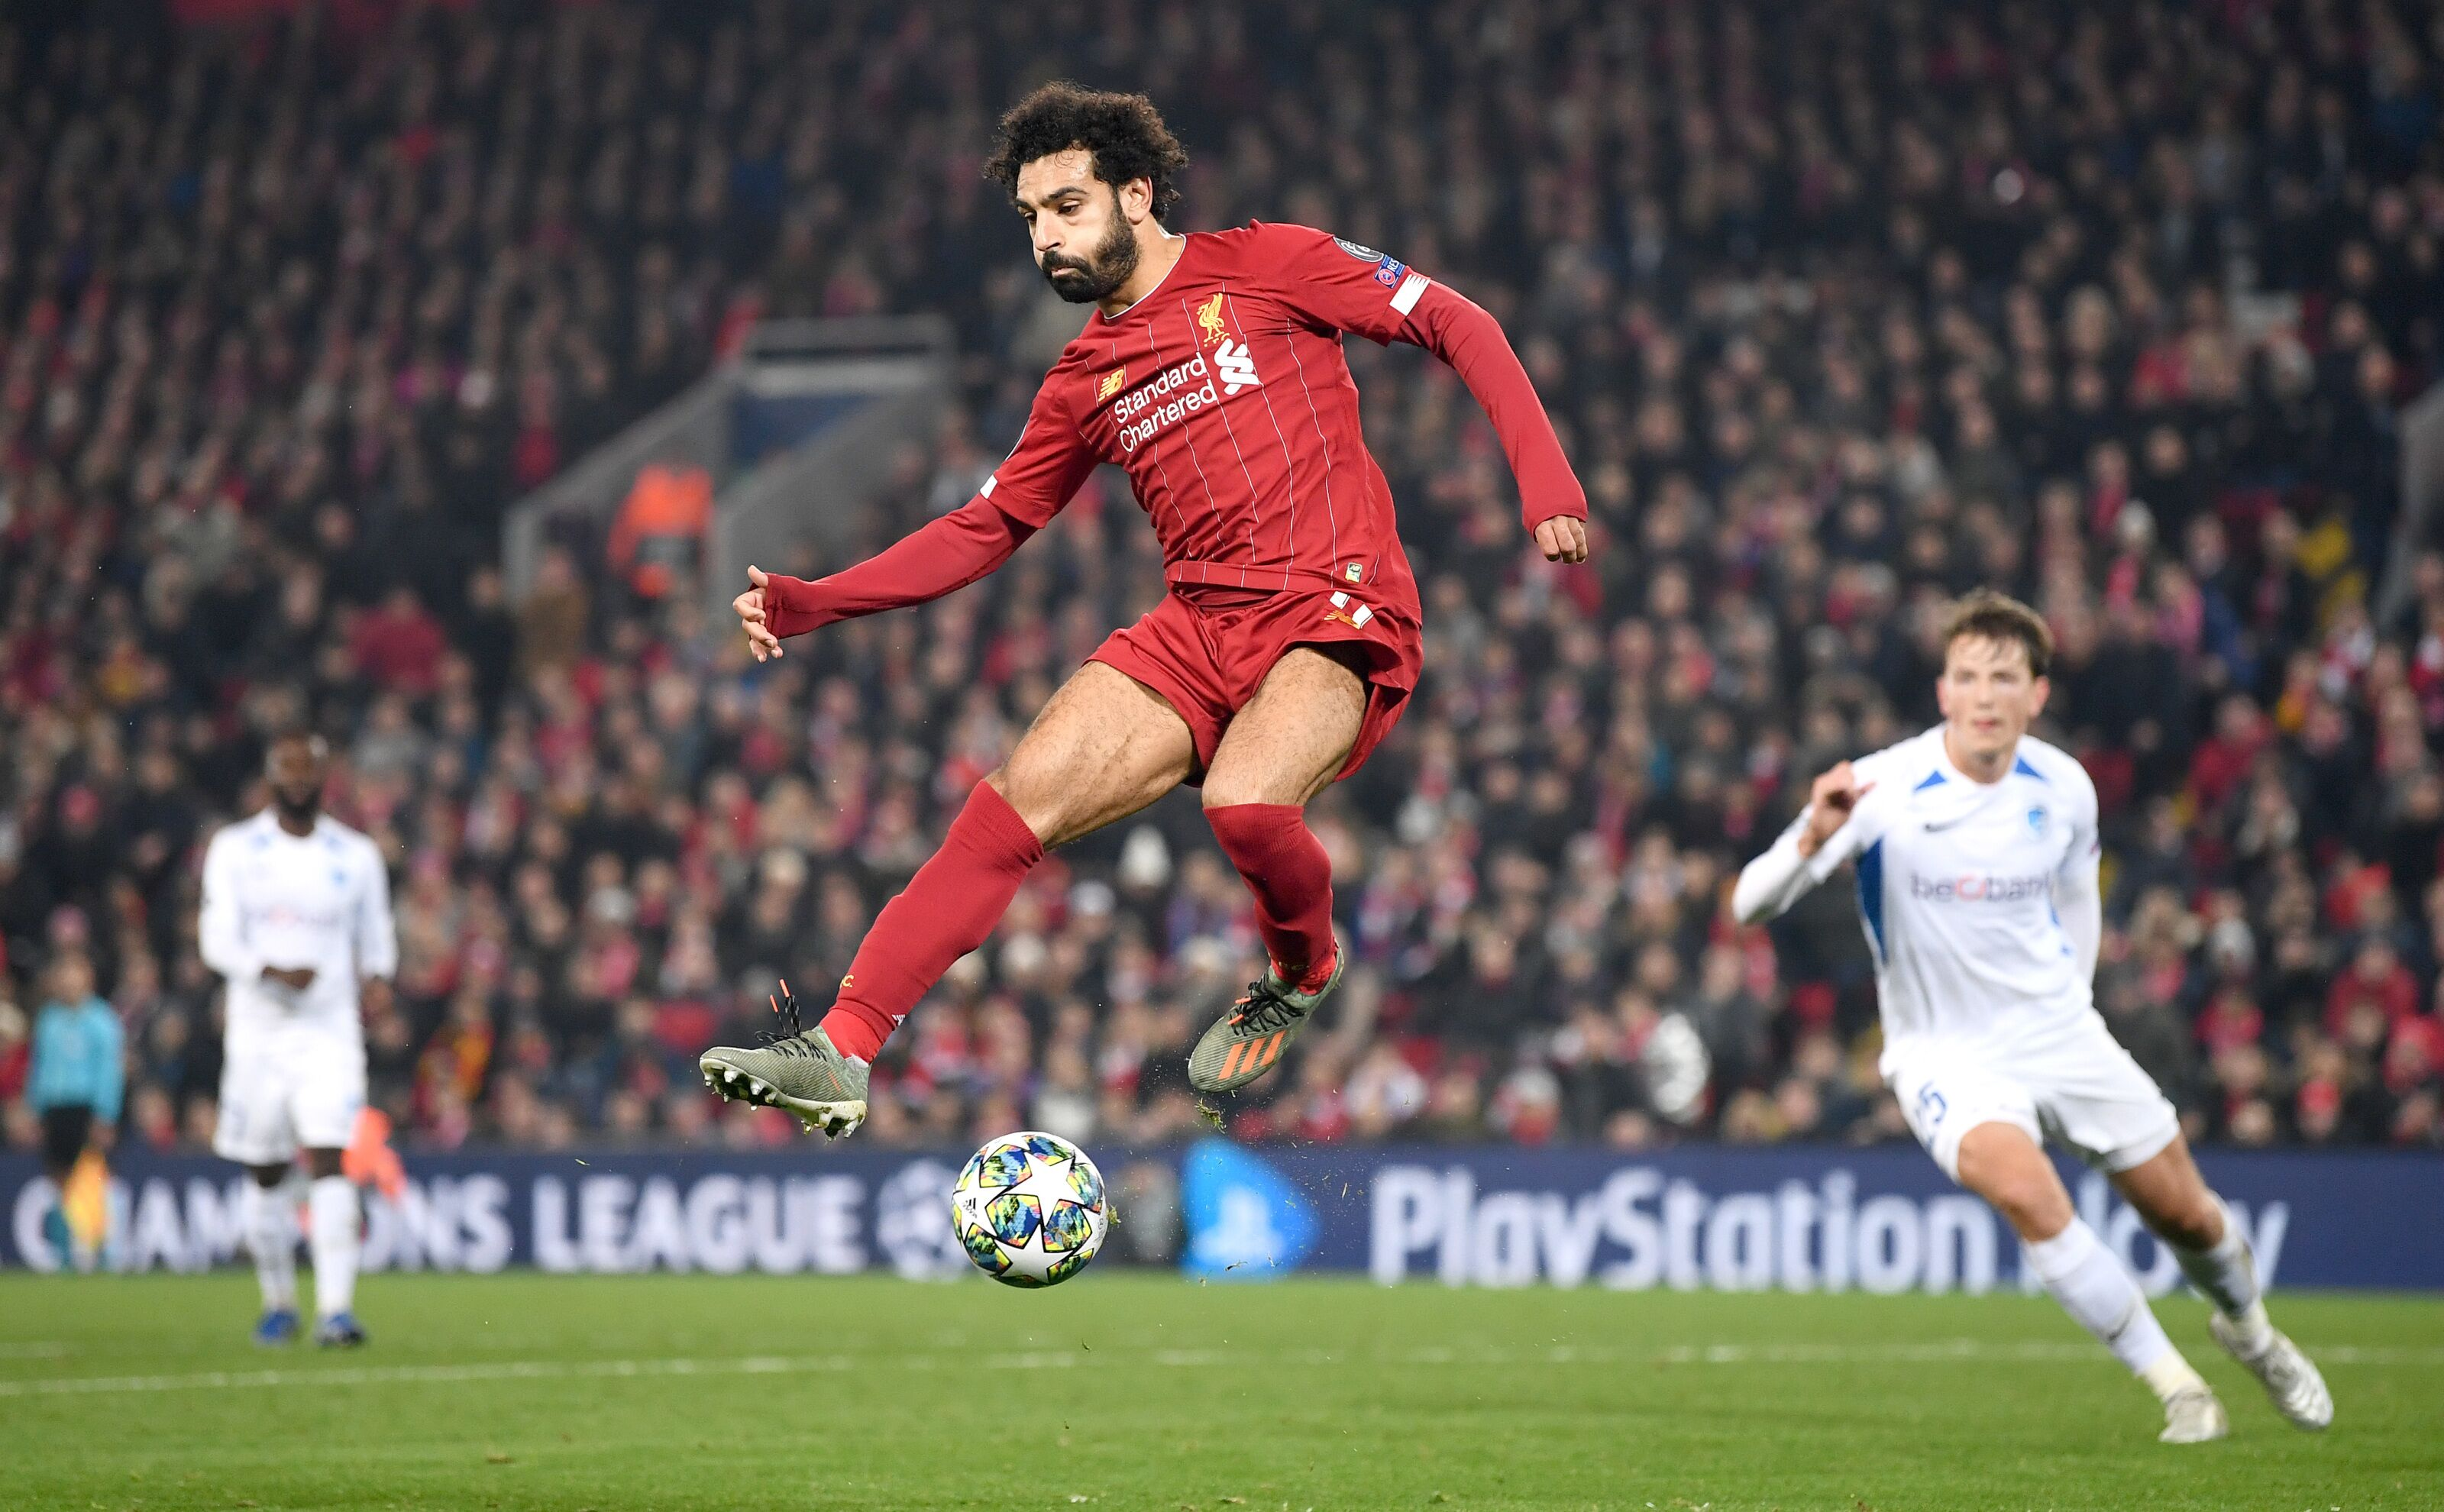 Liverpool news: Mohamed Salah shares Anfield happiness and quashes transfer rumors